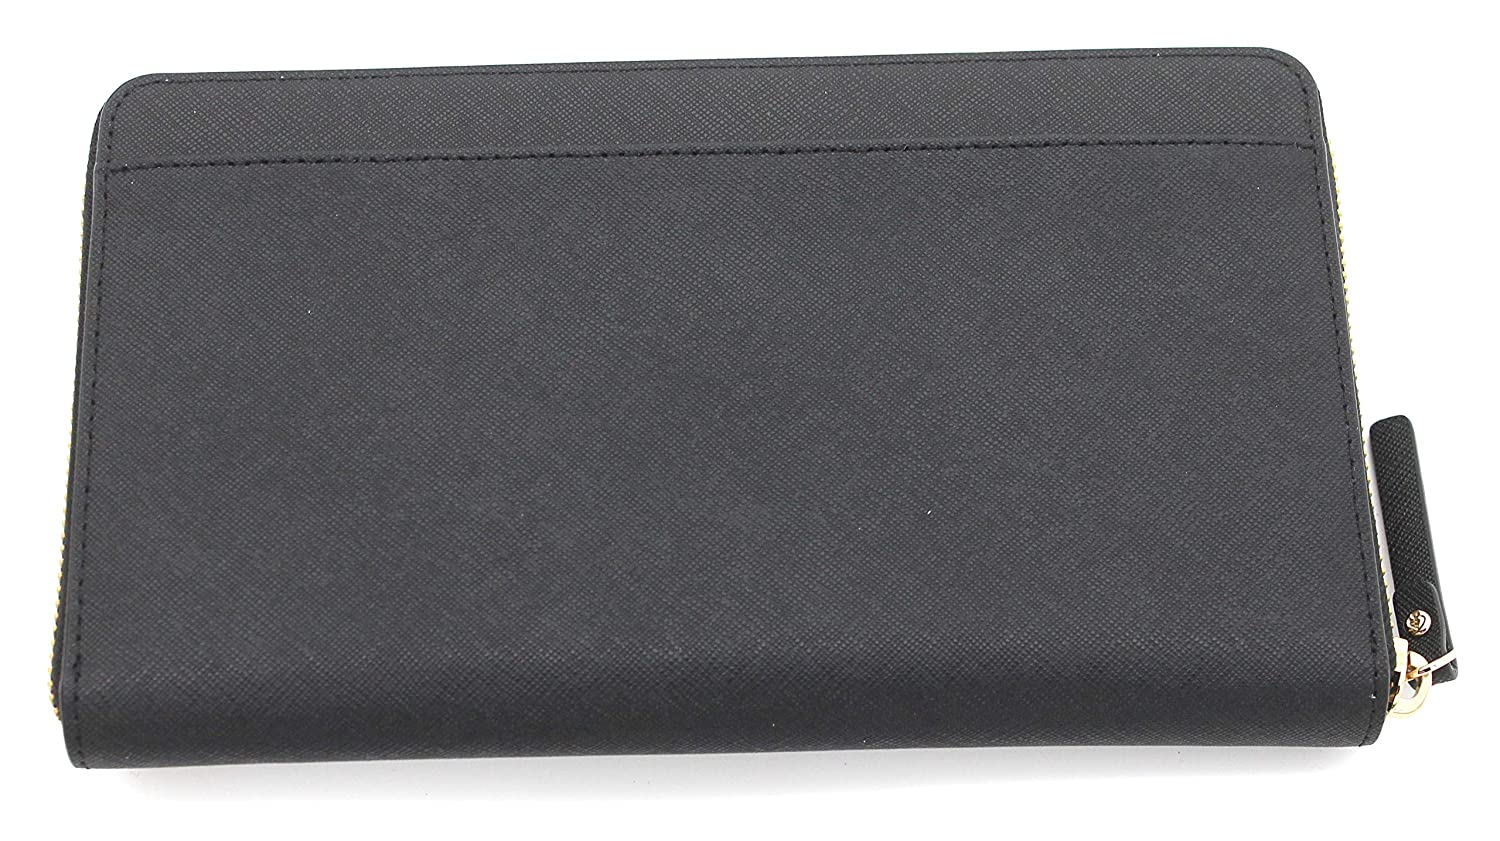 7c1edc154306 Kate Spade Laurel Way Kaden Large Travel Wallet (Black) at Amazon ...